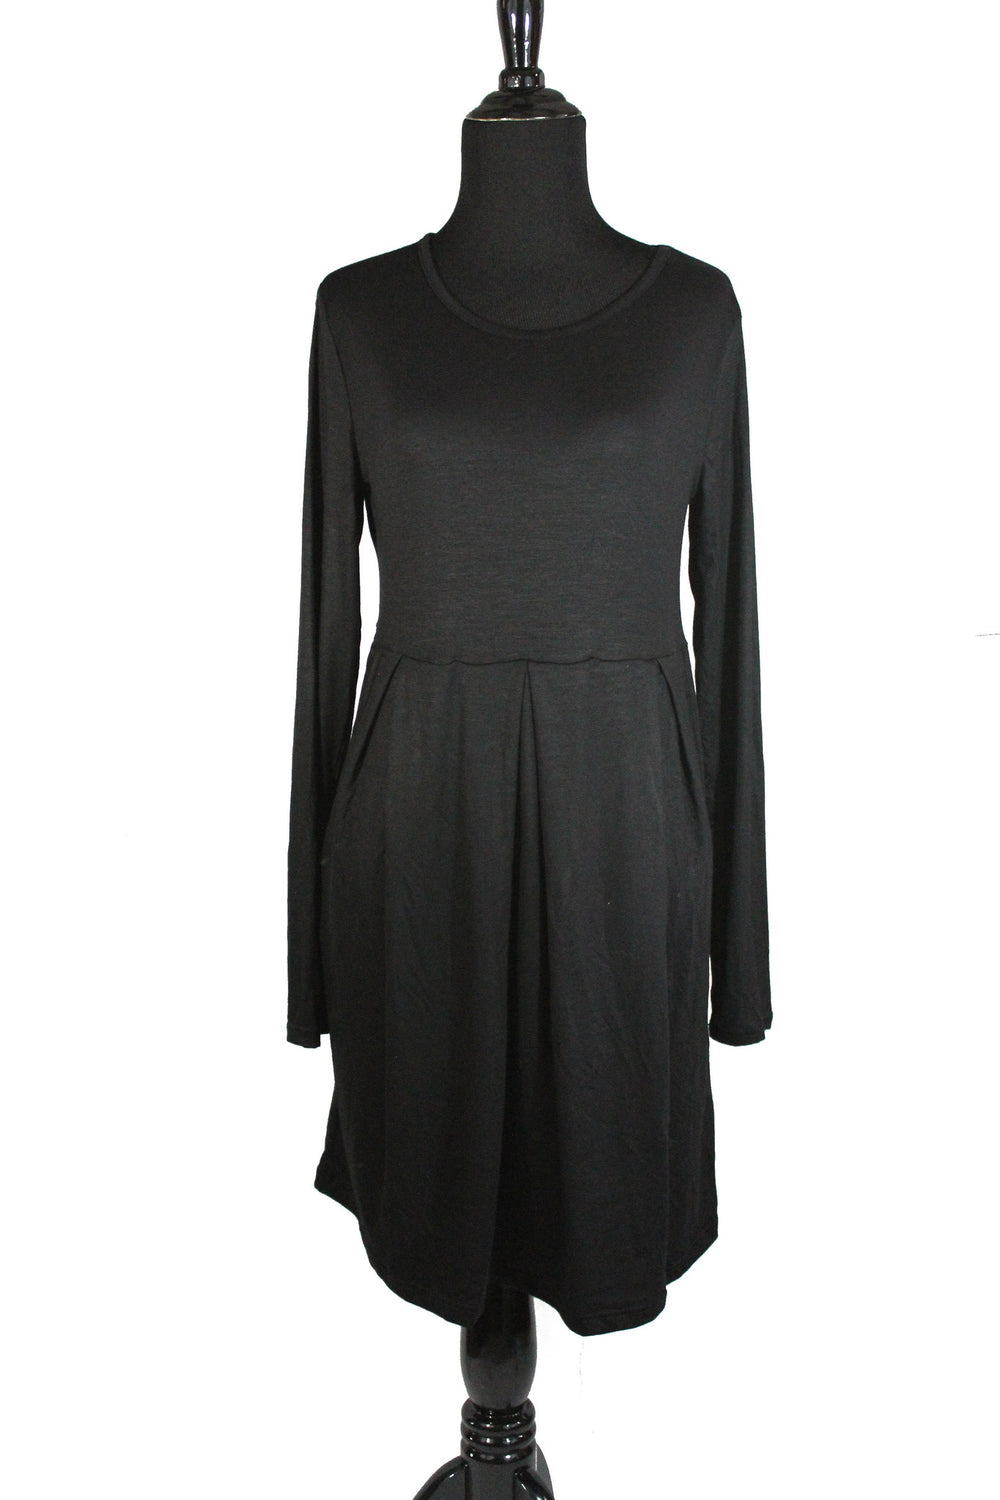 black long sleeved midi top with an aline and pleats